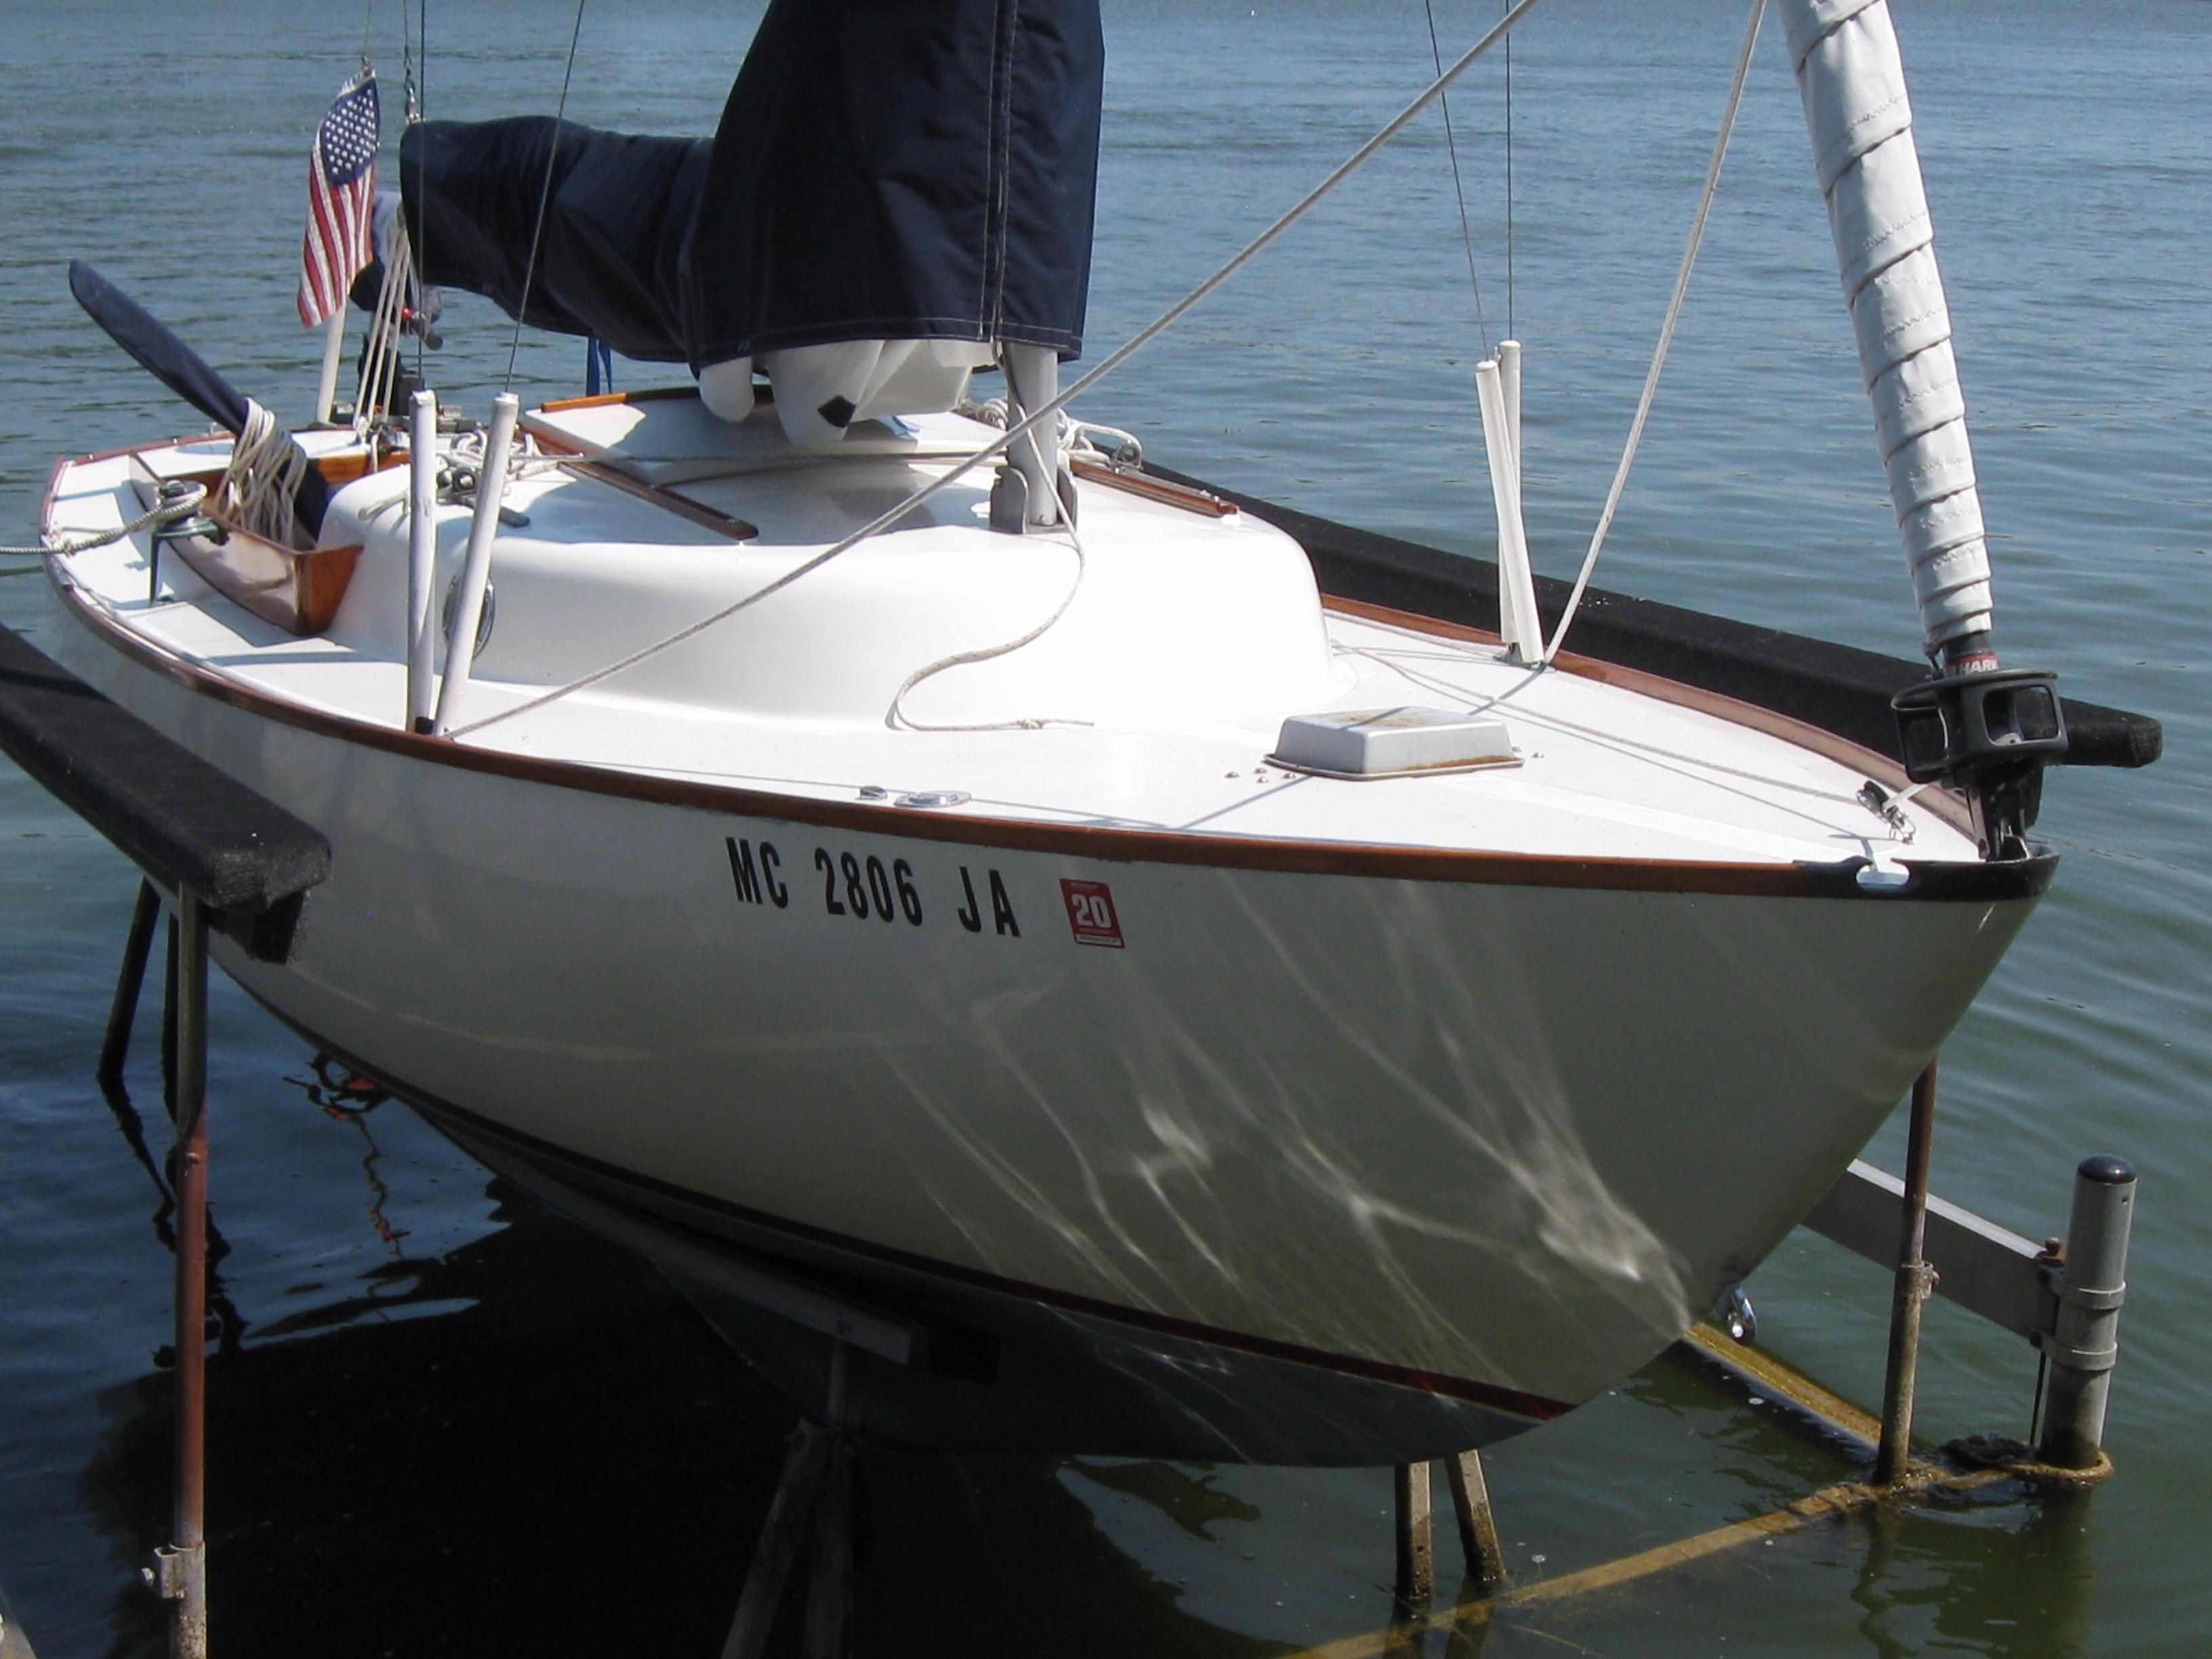 Cape Dory Typhoon >> 1971 Cape Dory Typhoon Weekender Sail Boat For Sale - www.yachtworld.com